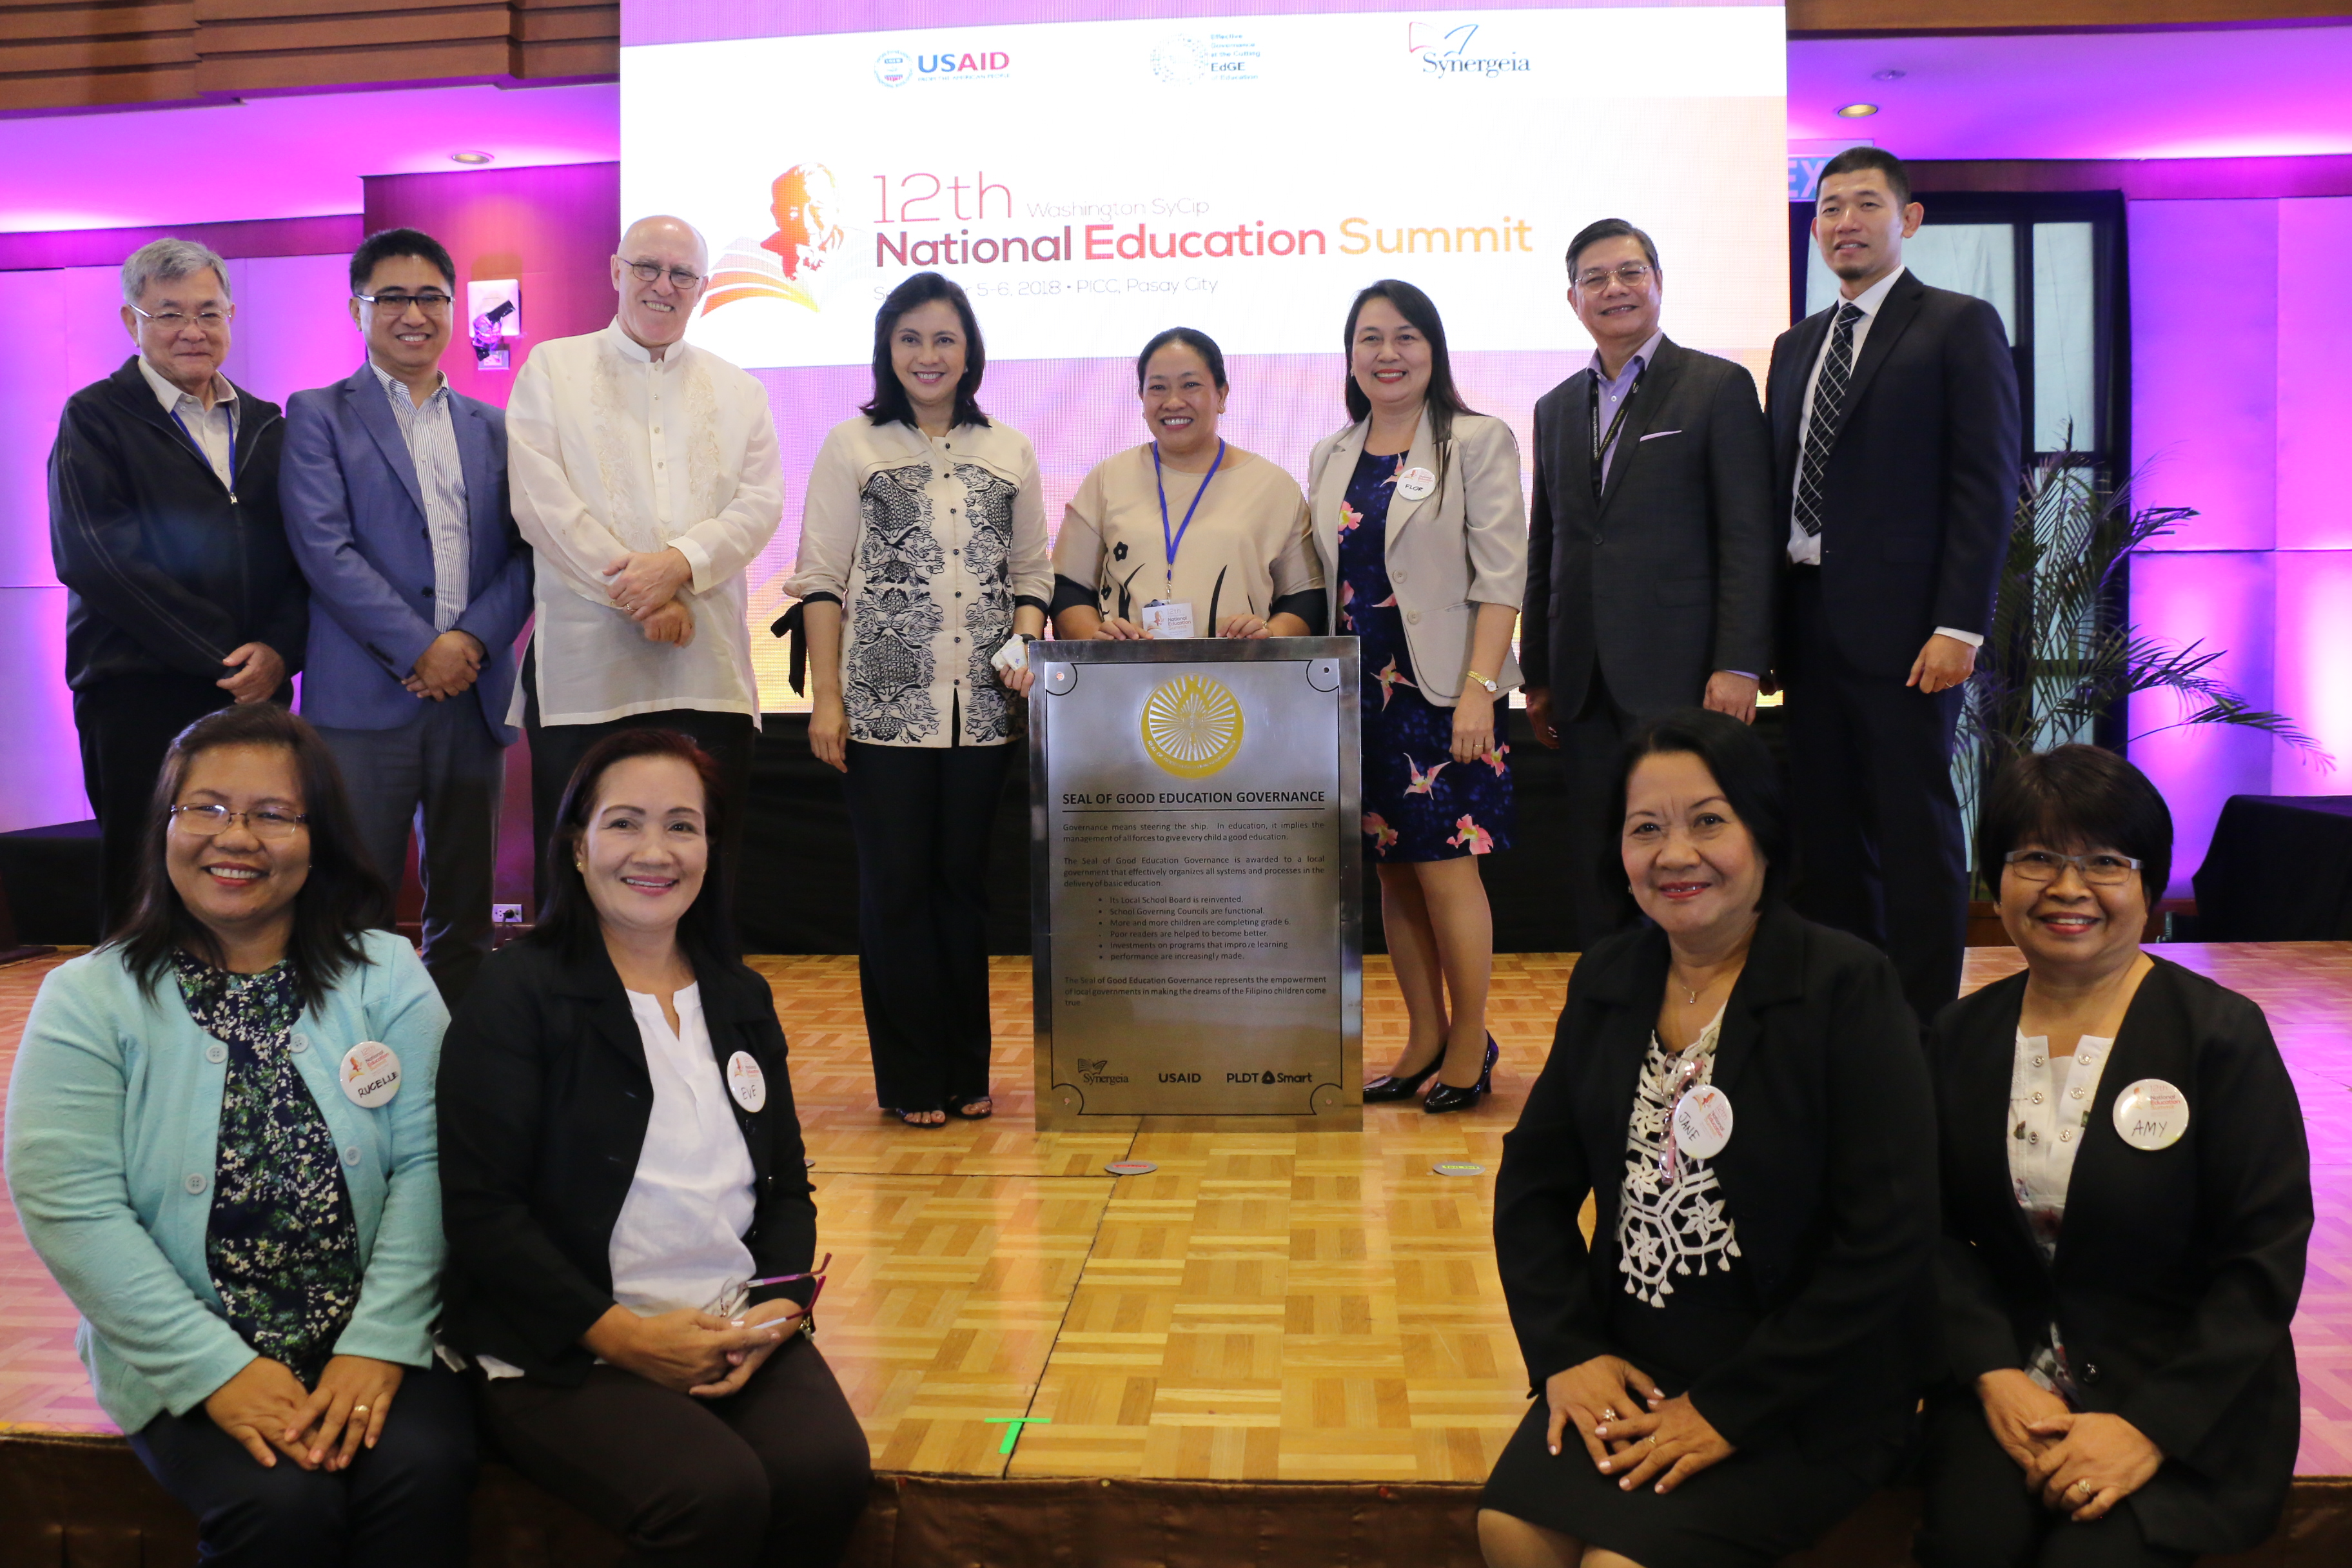 Metrics level playing field for LGUs on good education governance